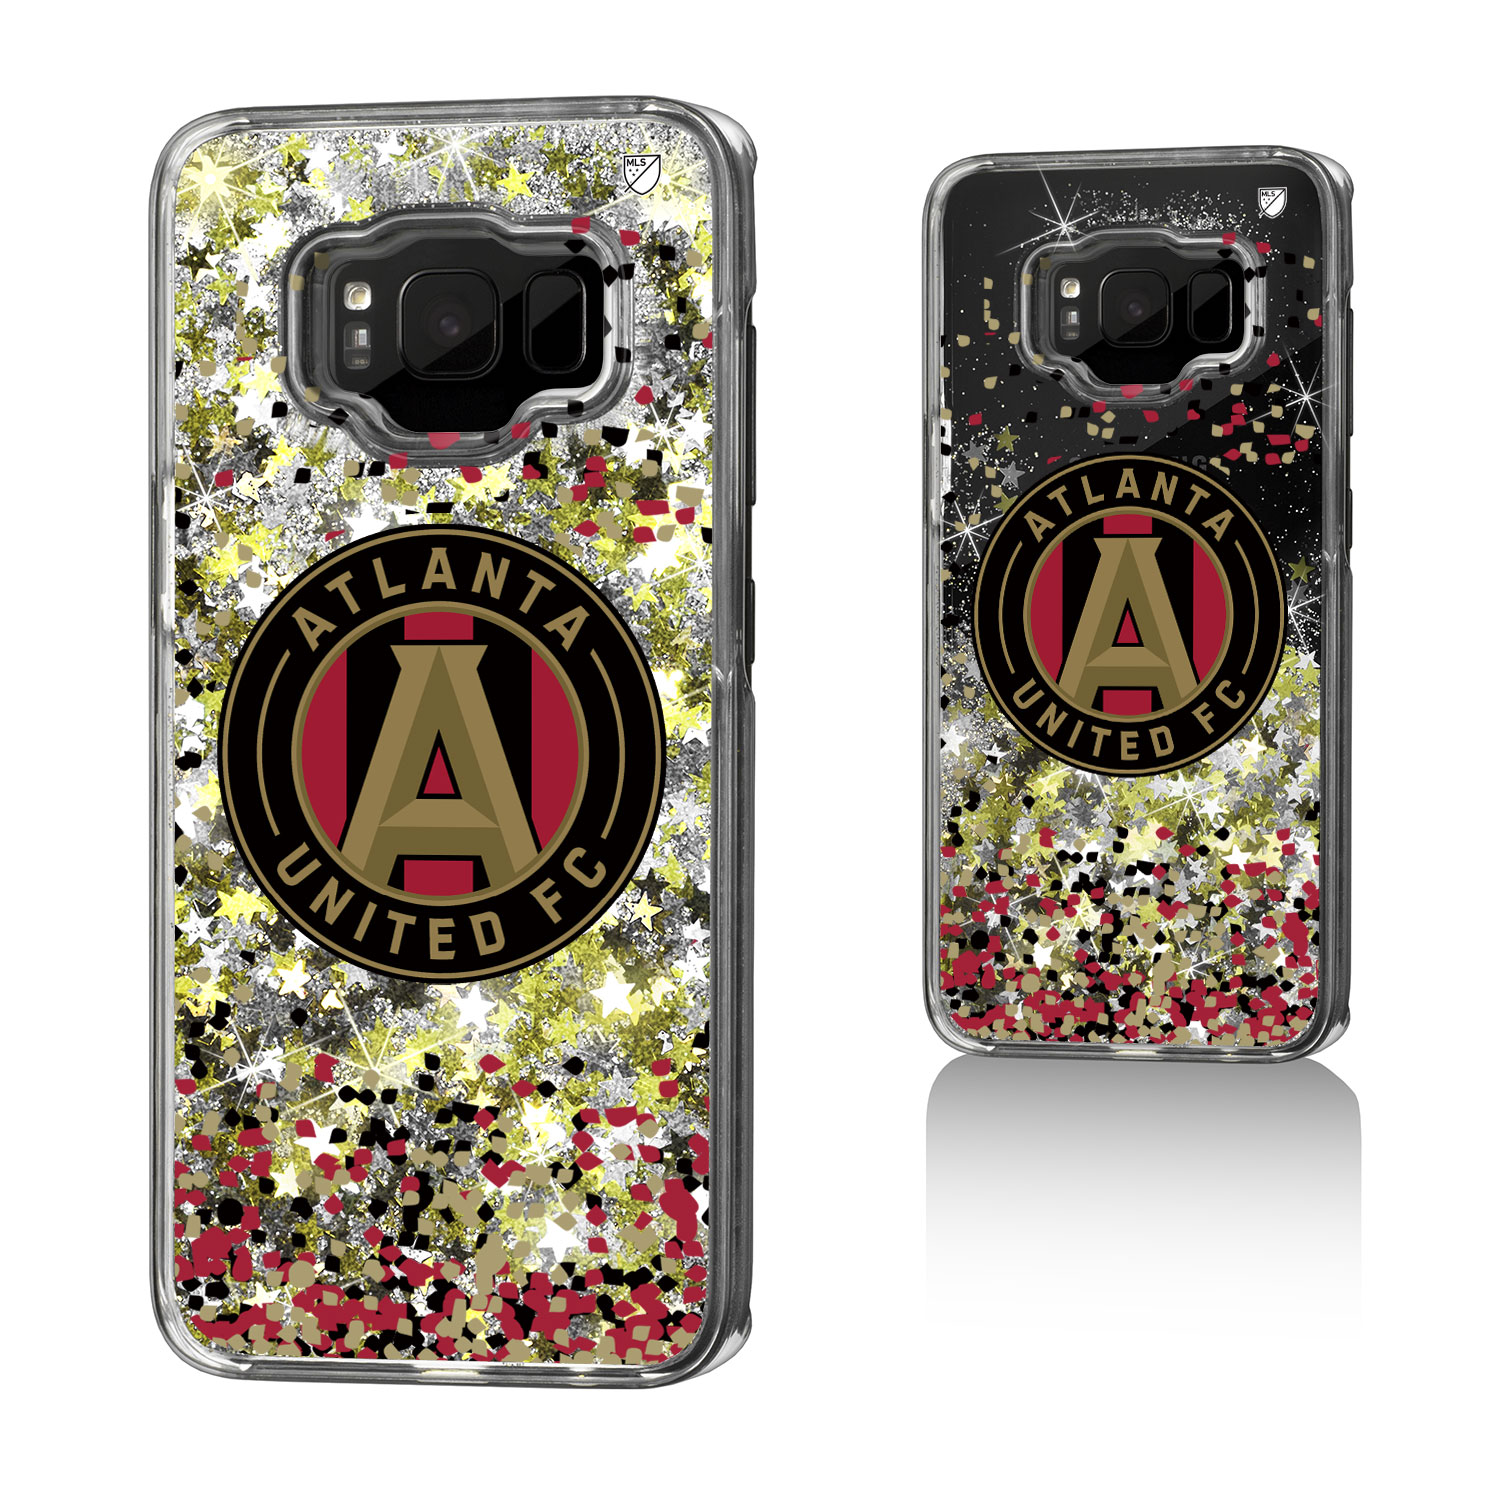 Atlanta United FC ATLUTD Confetti Glitter Case for Galaxy S8